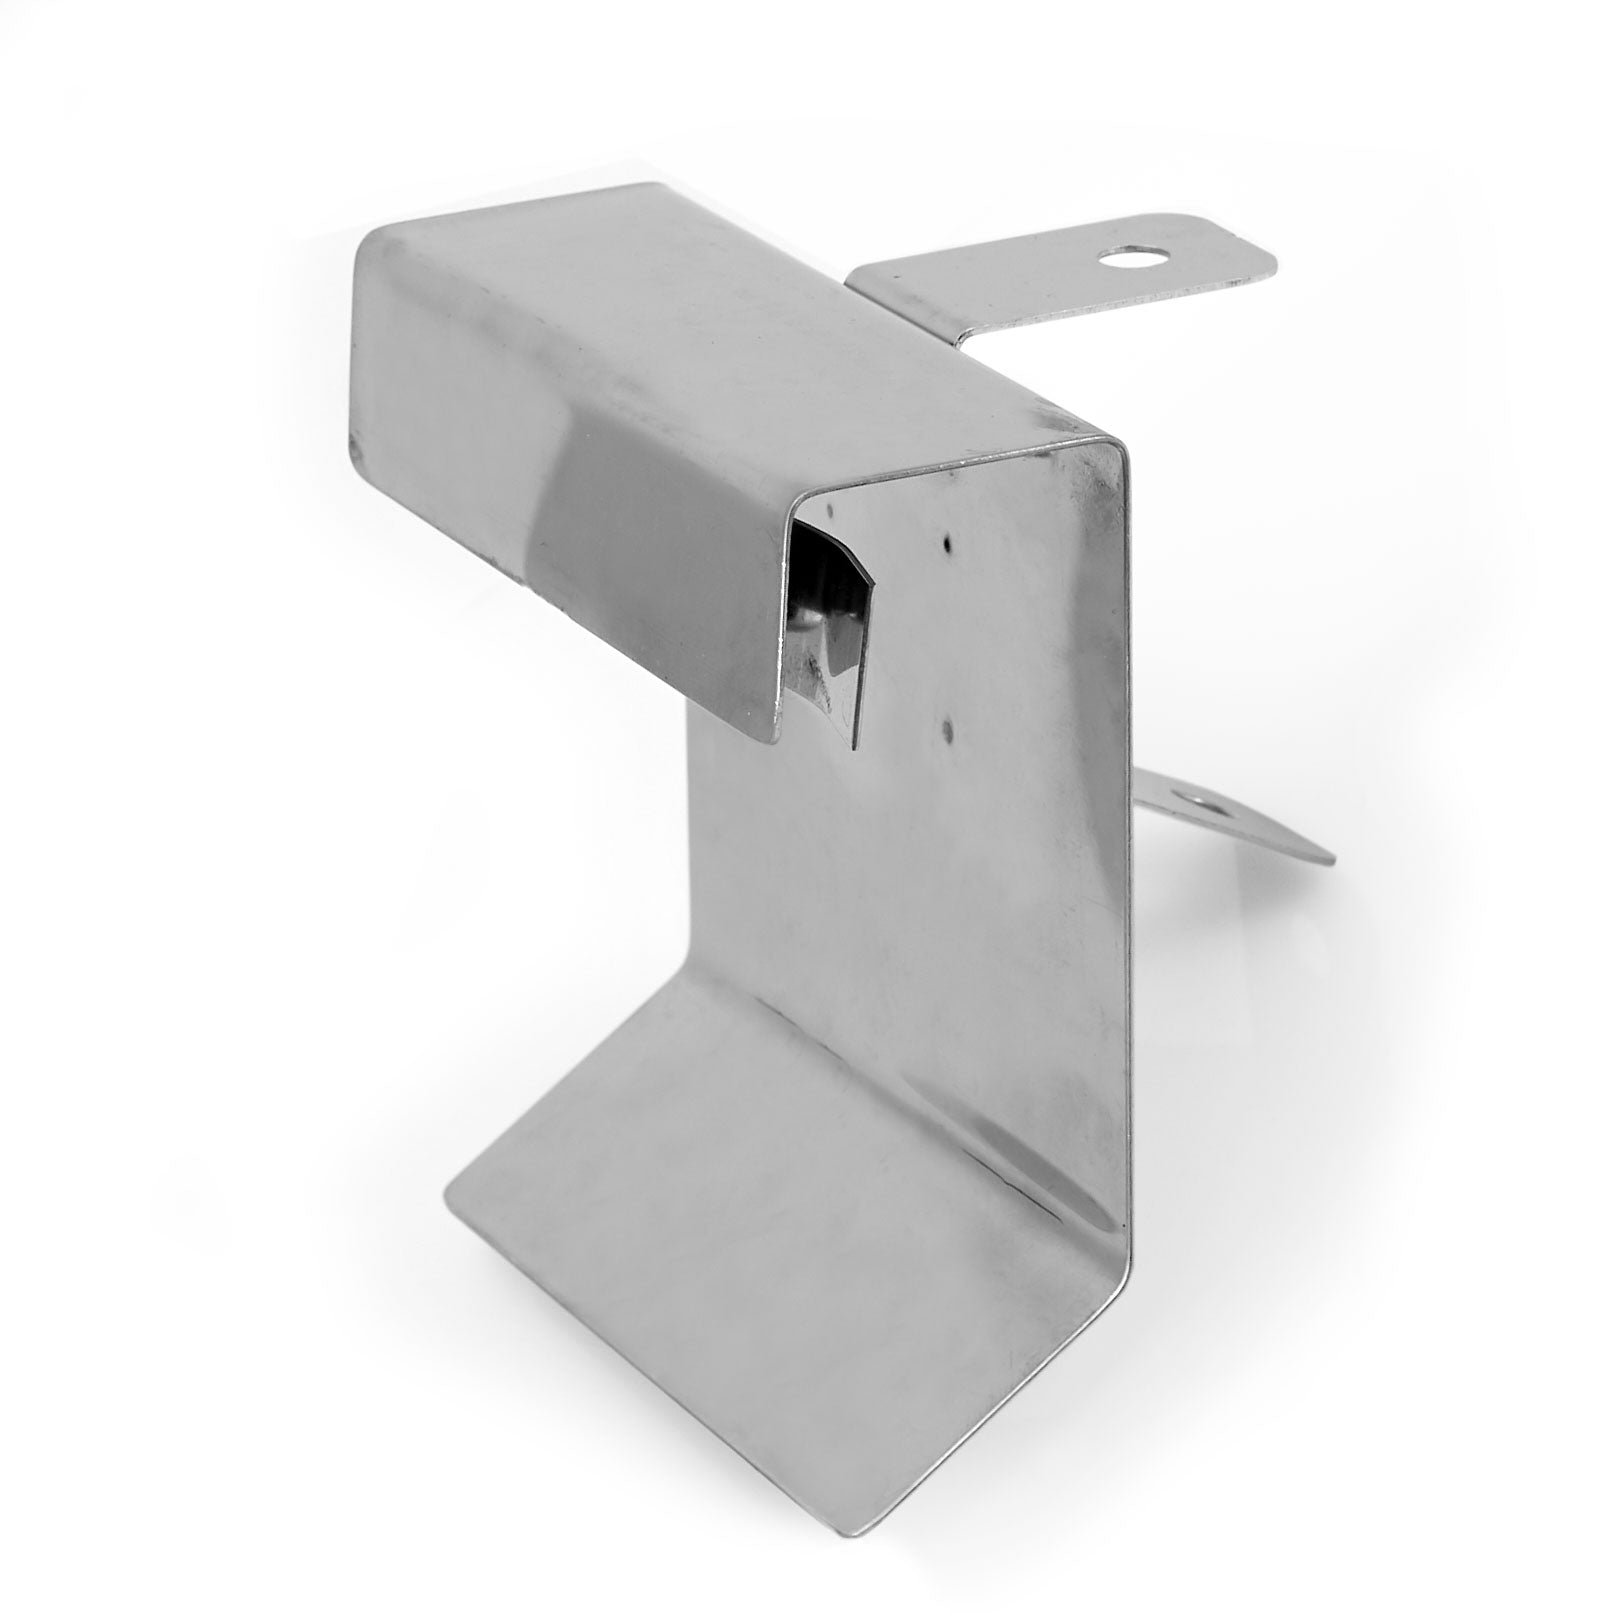 Thermometer Bracket for Welded Pan (for digital or dial therm.)